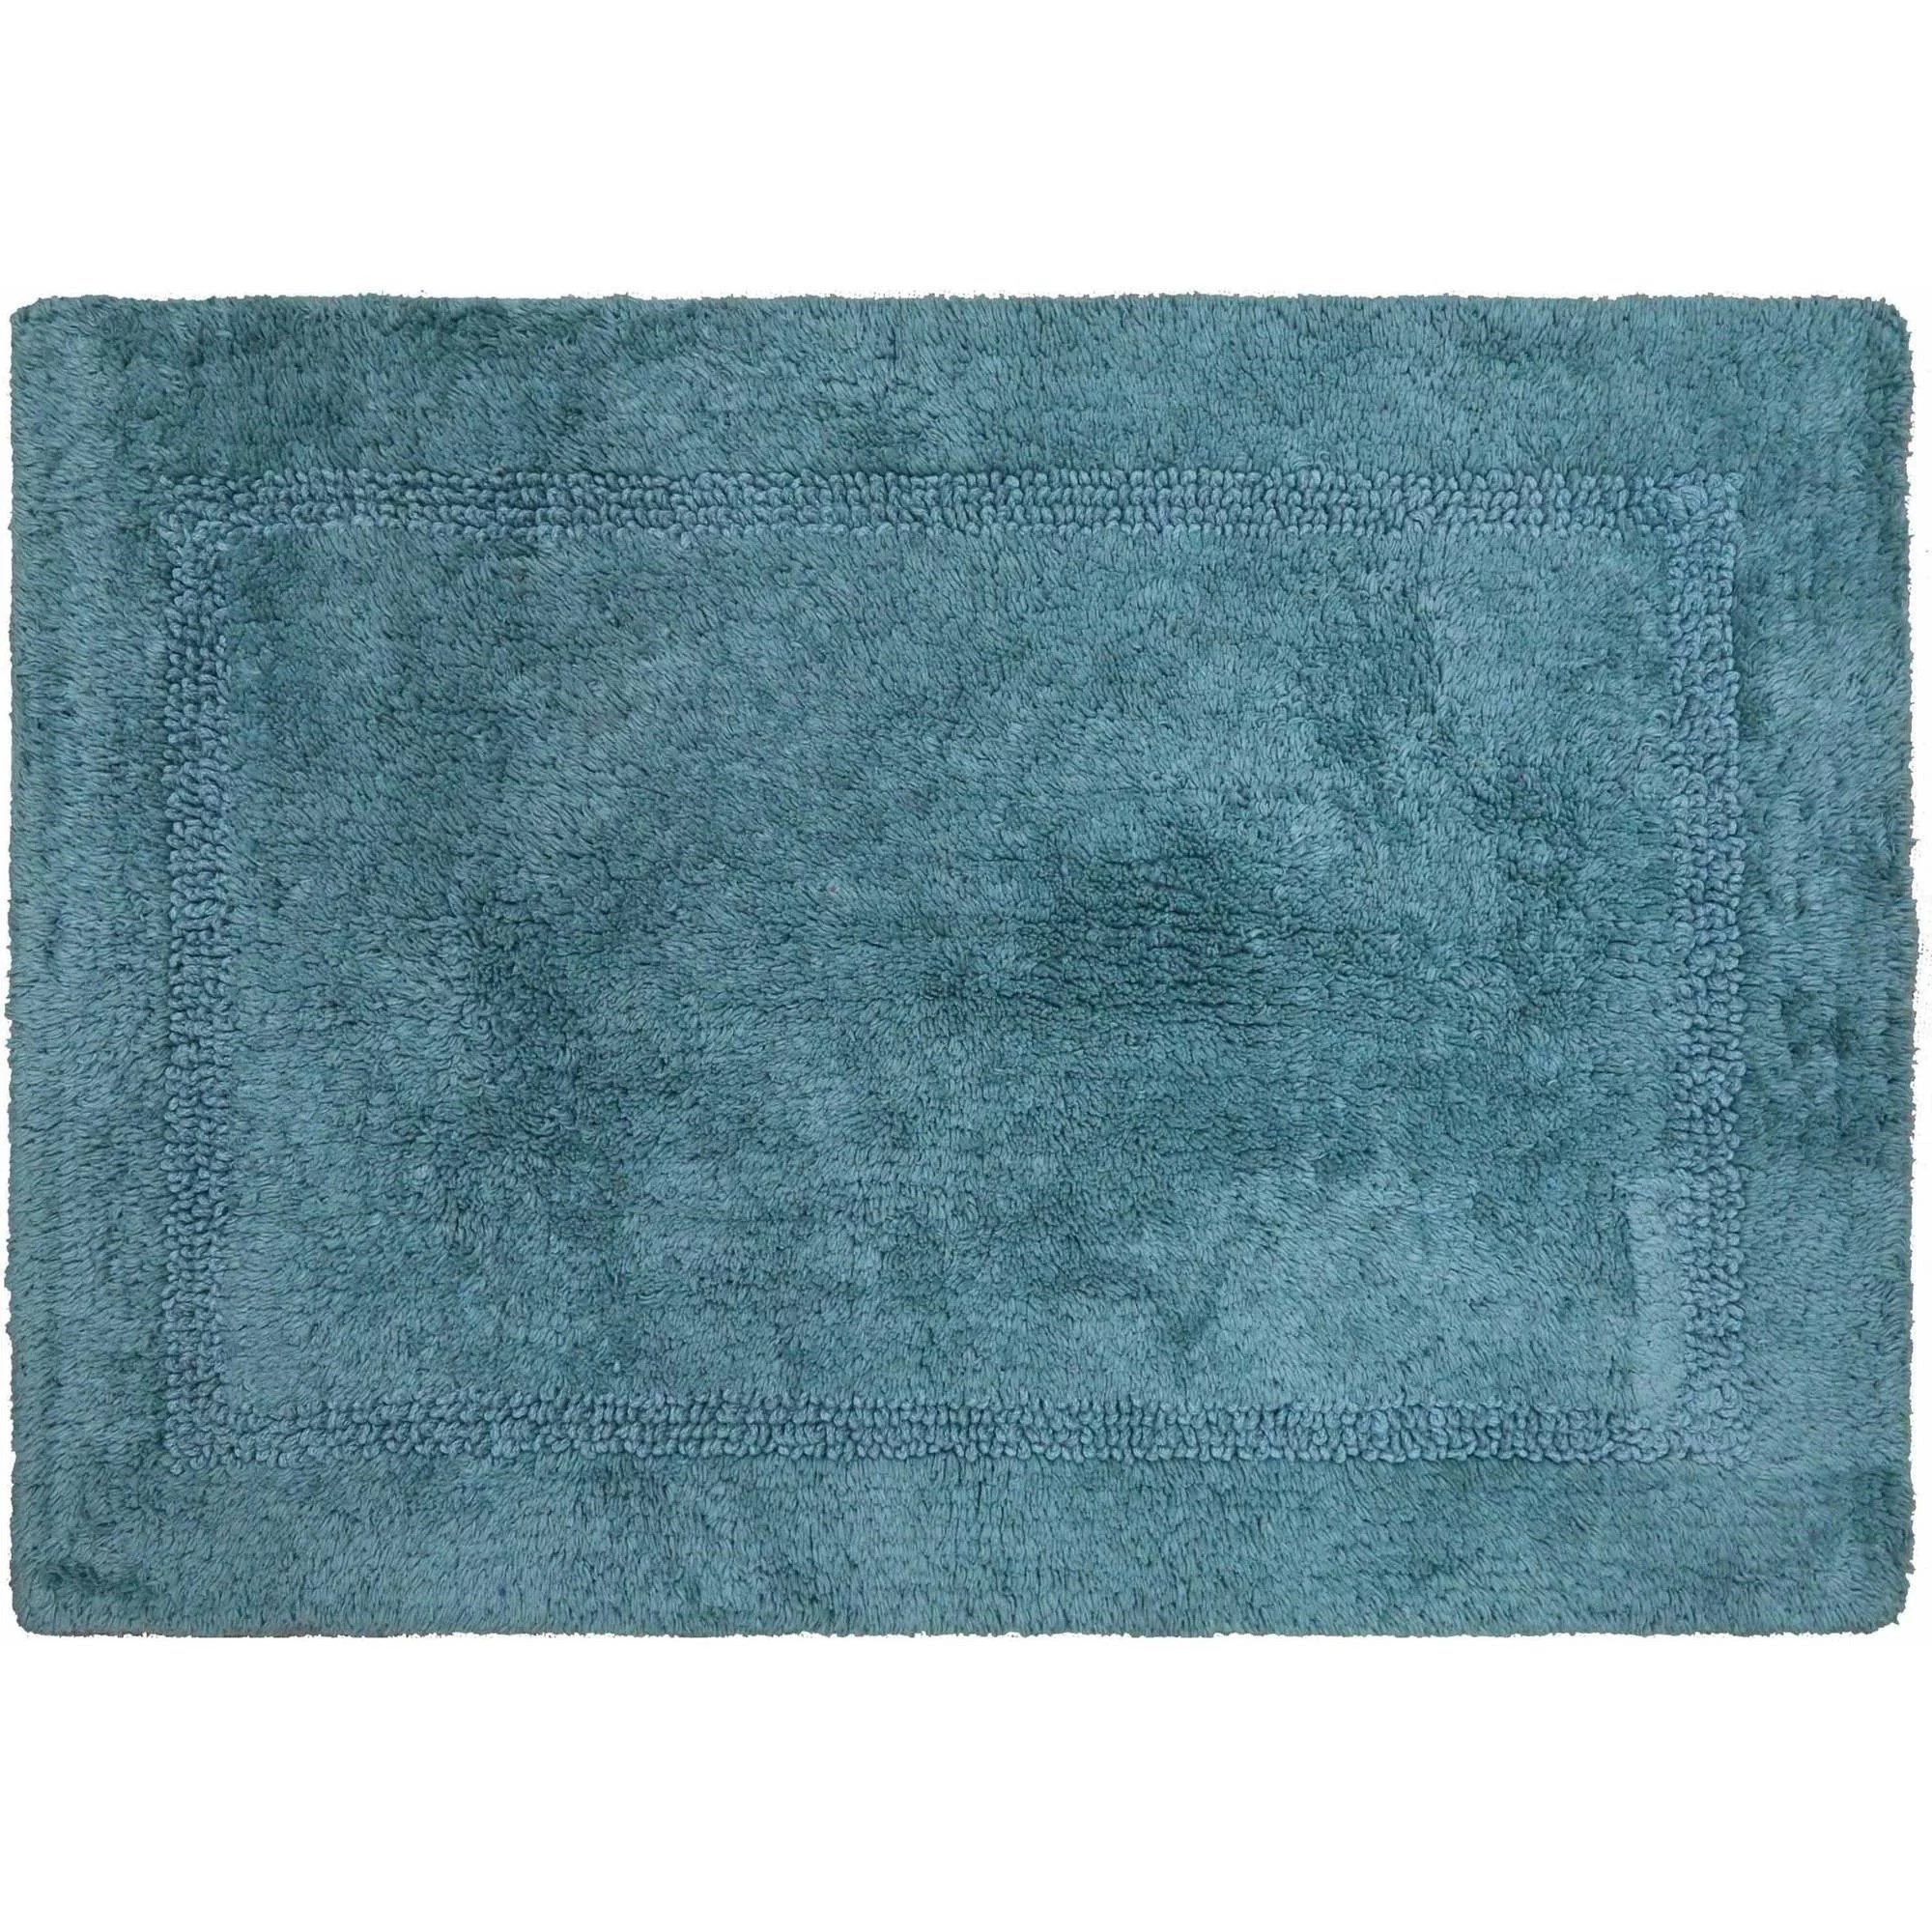 Machine Wash Rugs Better Homes Gardens Cotton Reversible Bath Rug 1 Each